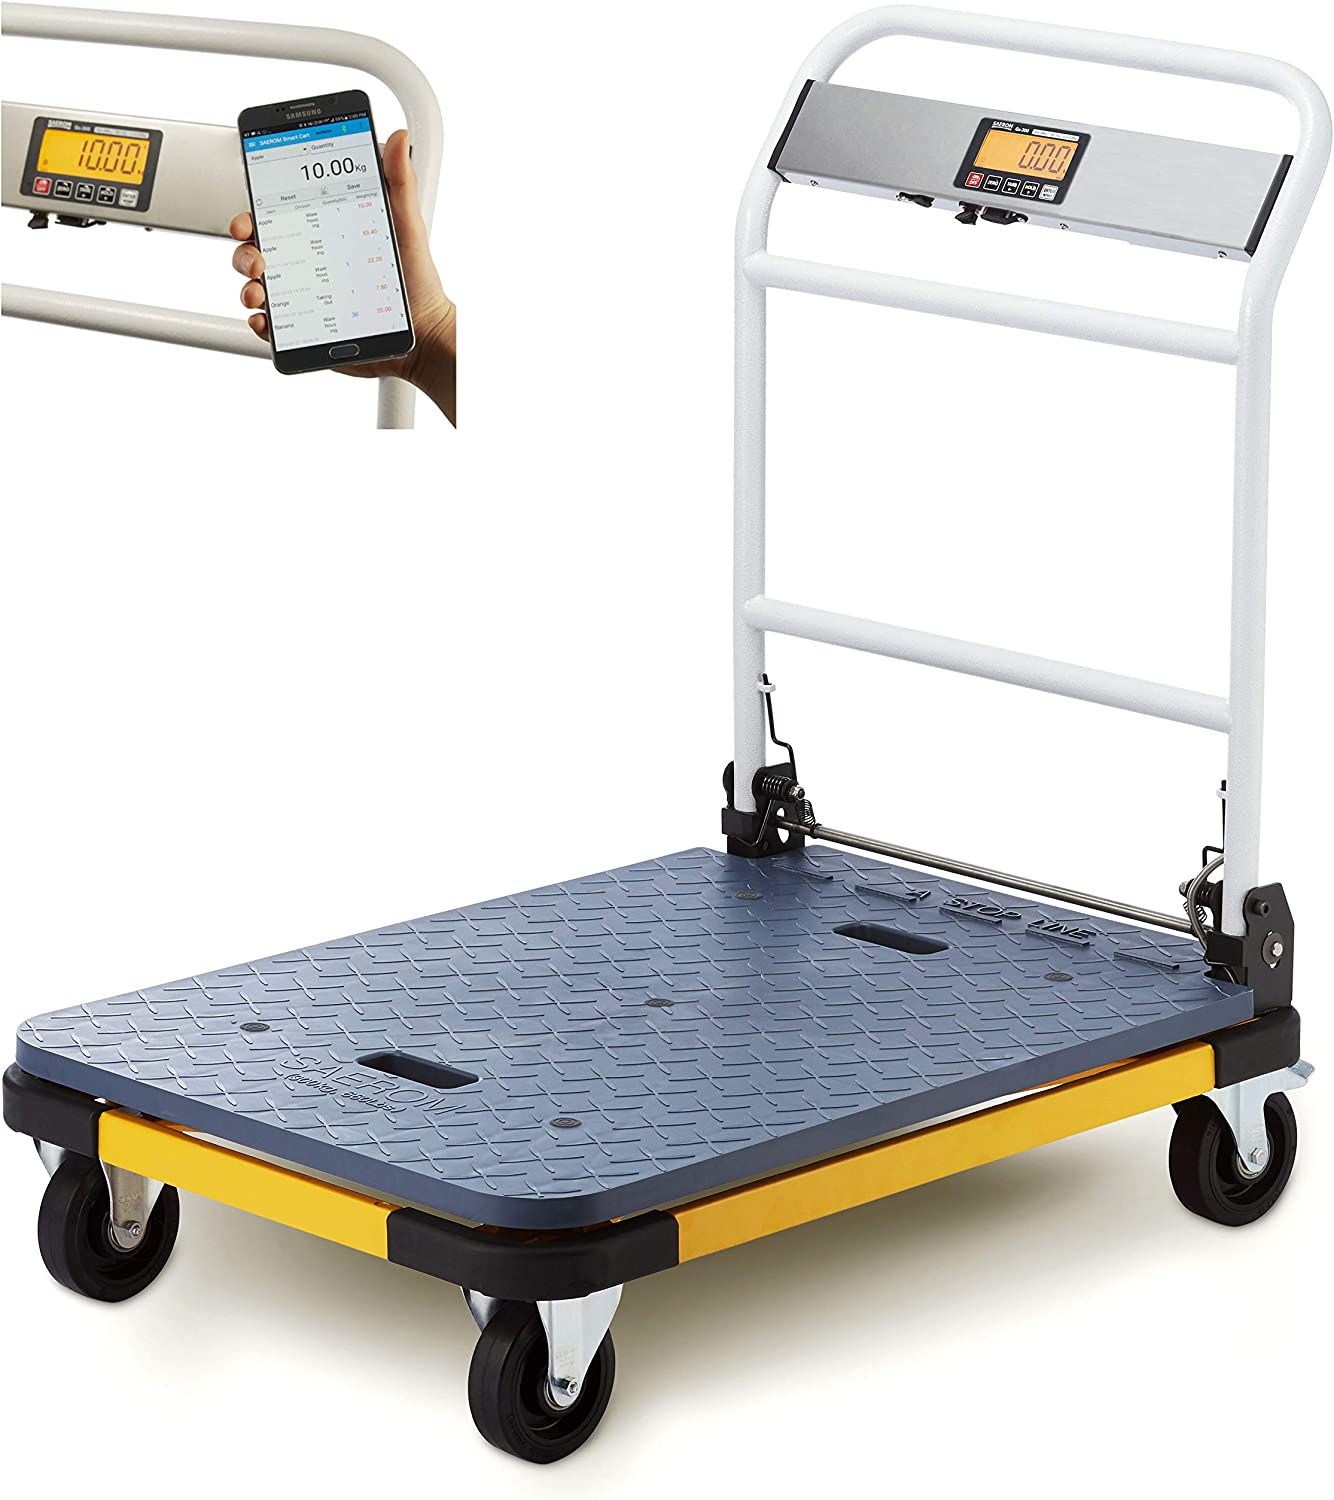 SAEROM Shipping Scale 660lb x 0.1lb, 36'' x 24'', Mobile app (only for Android), USB Port, No Printer